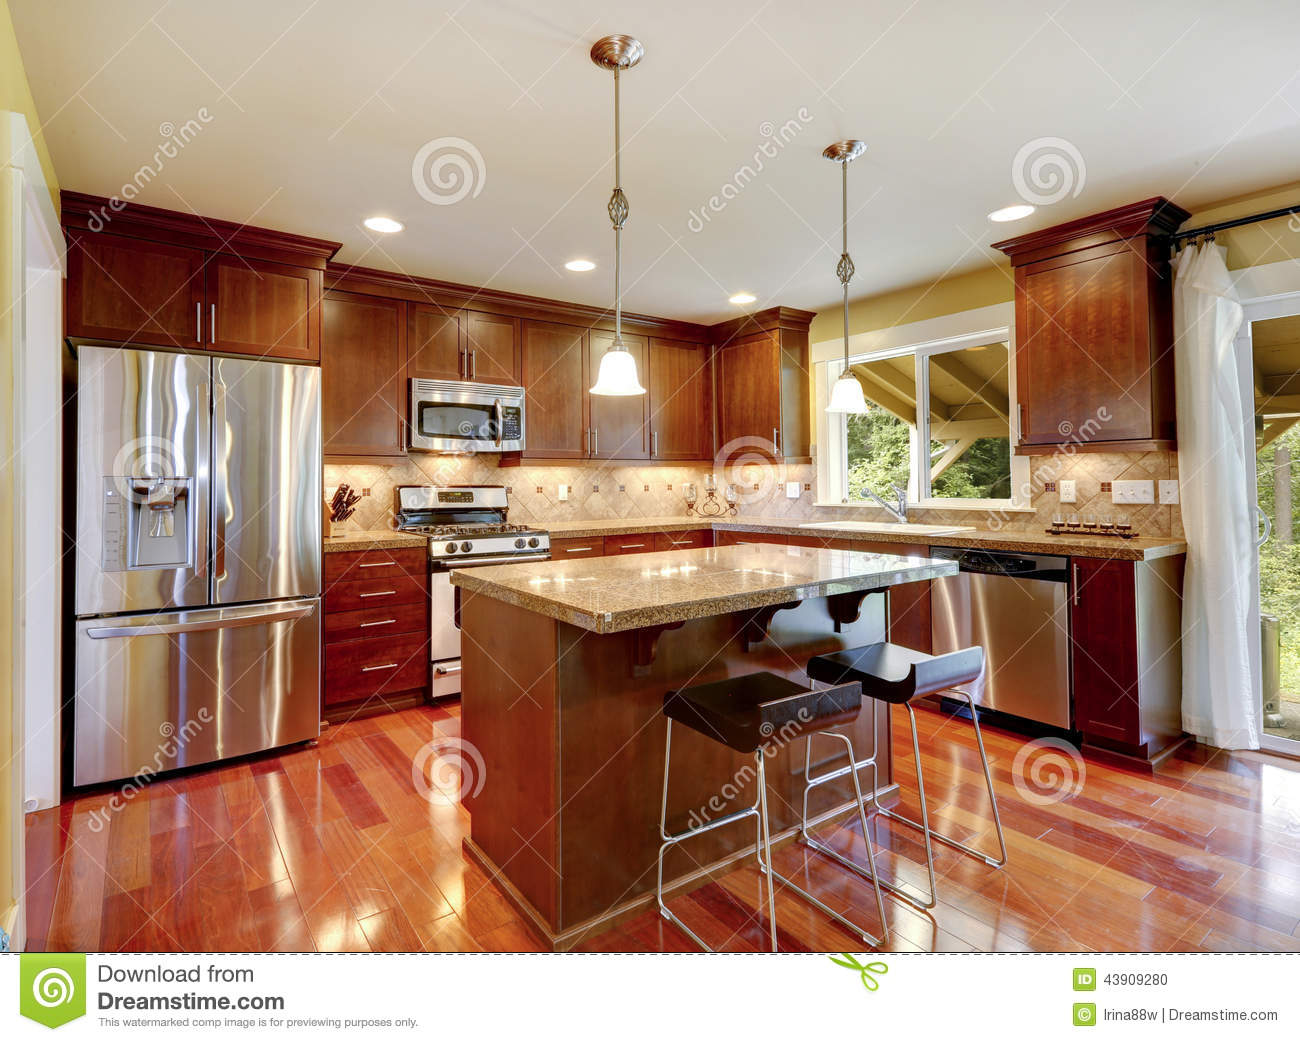 Simple Warm Colors Kitchen Room Stock Image - Image of ...